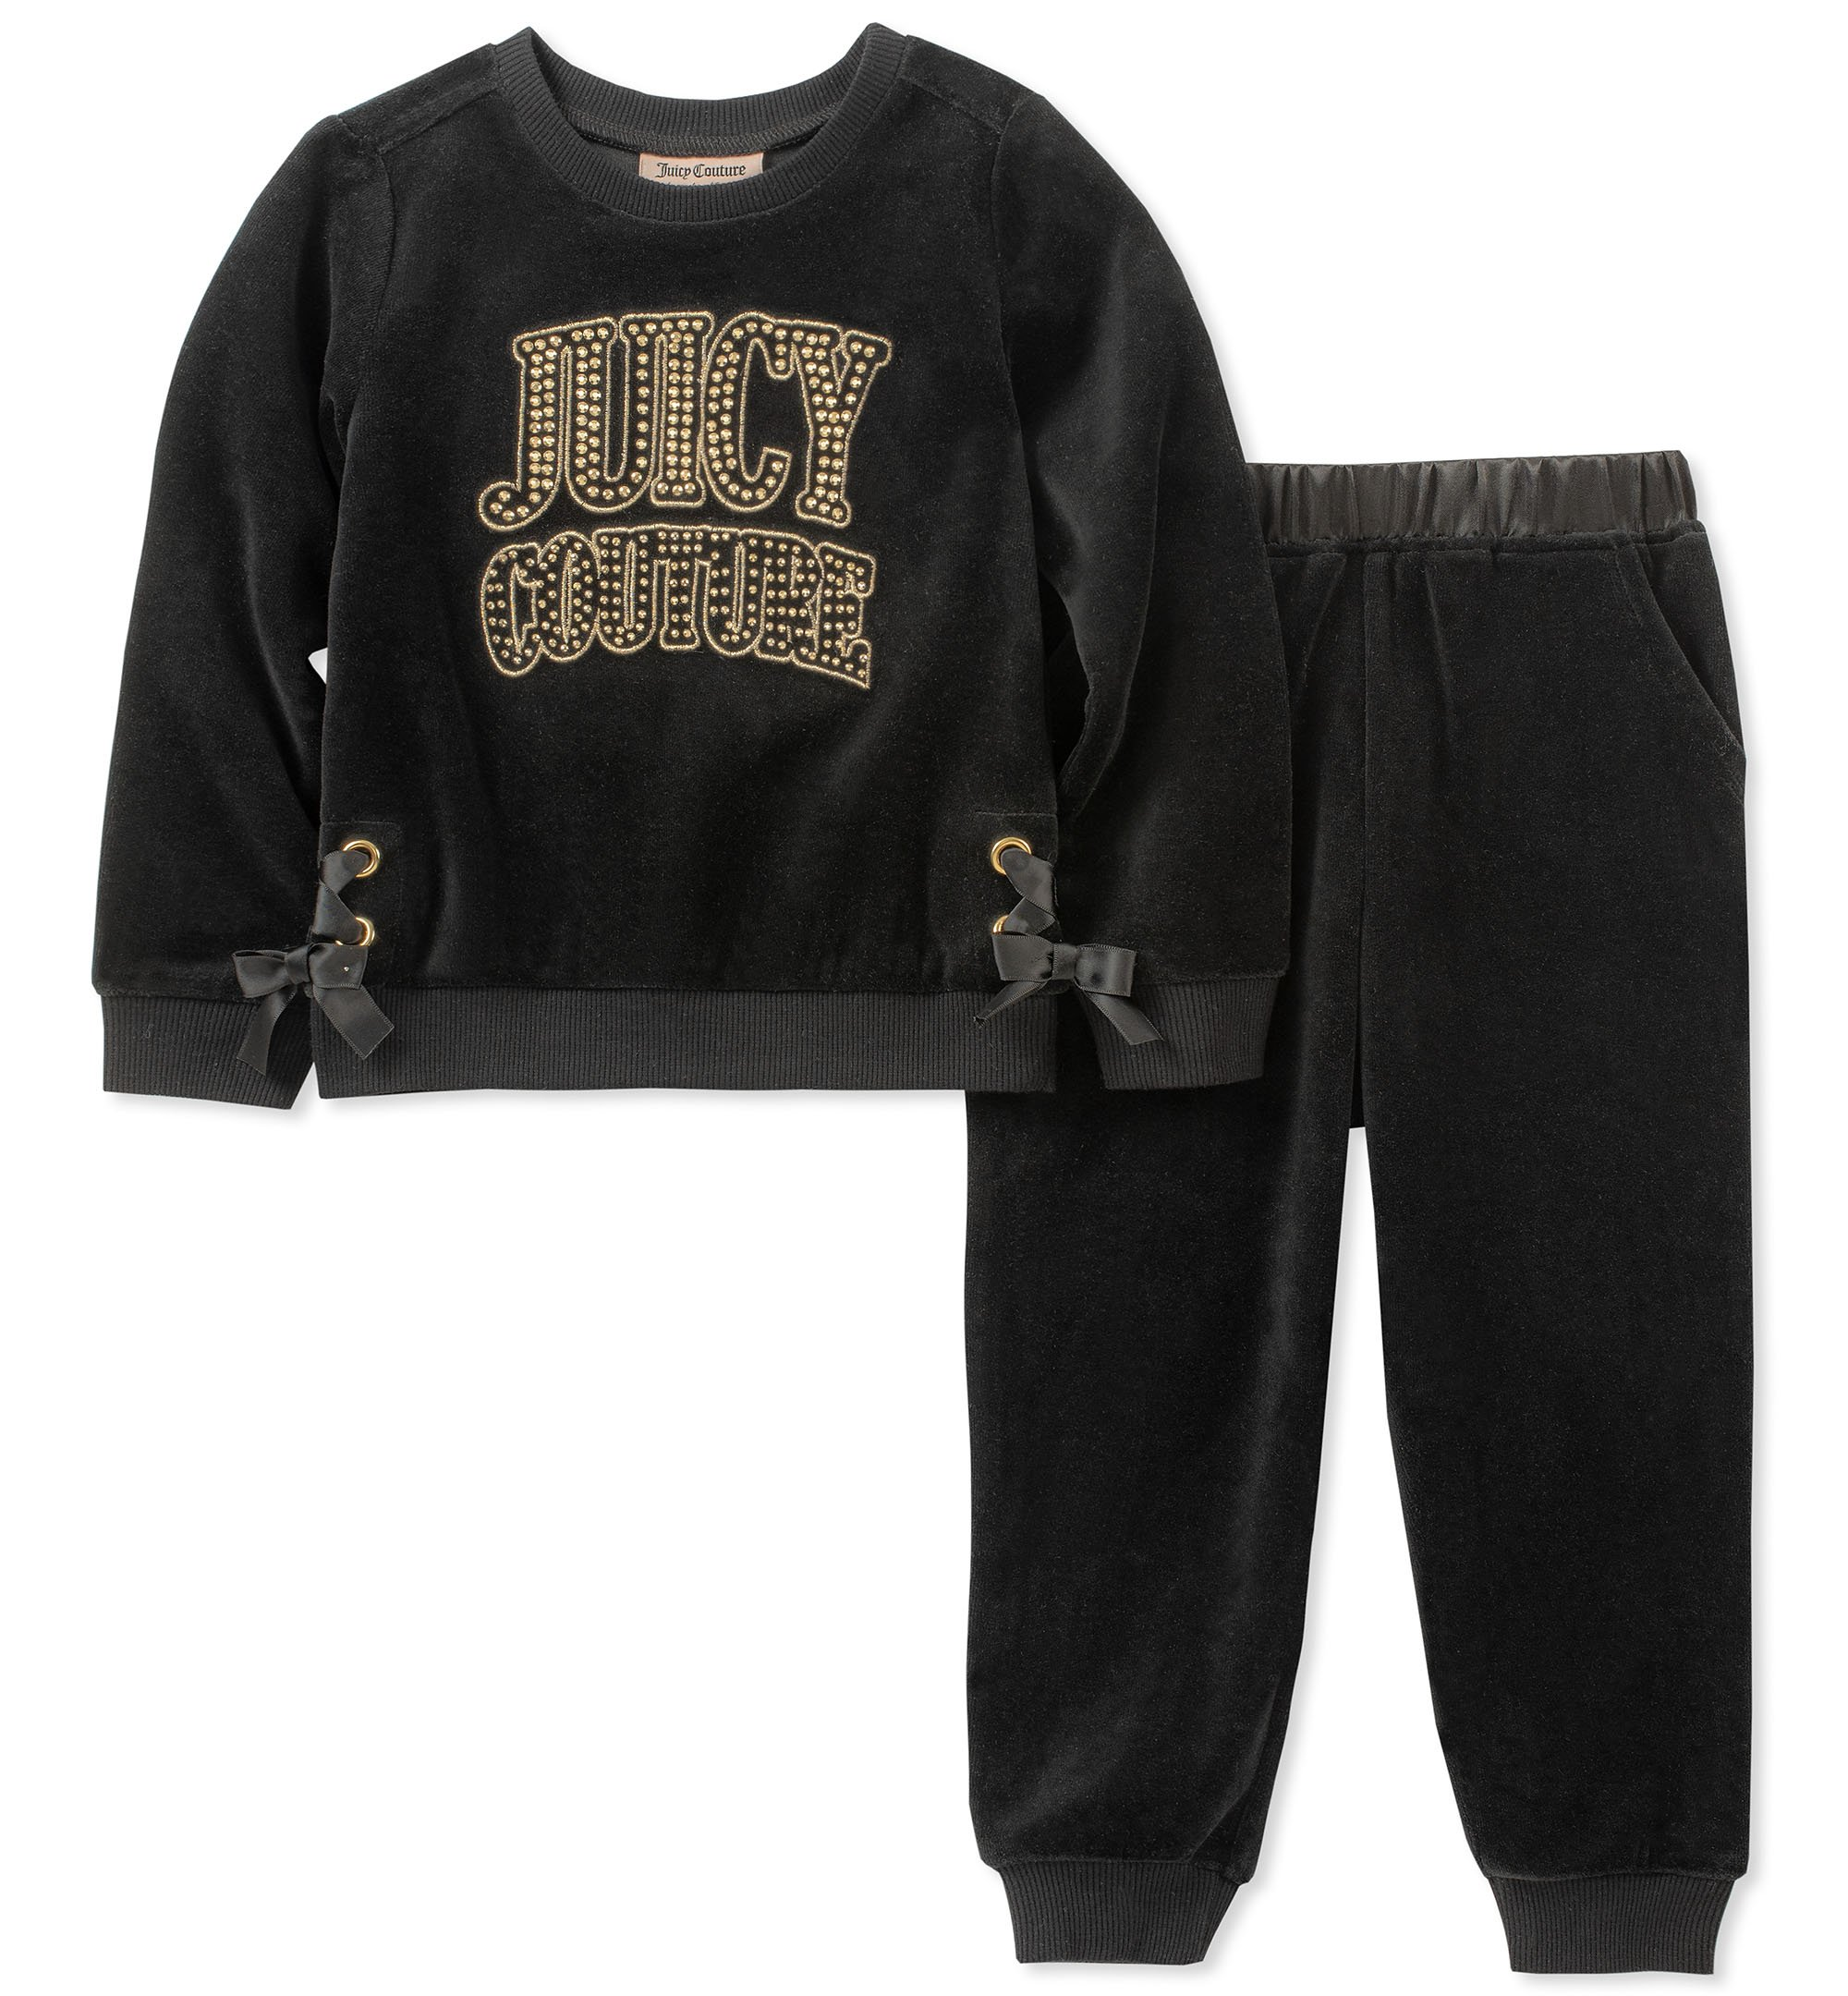 Juicy Couture Girls' Toddler 2 Pieces Pant Set-Velour, Black, 3T